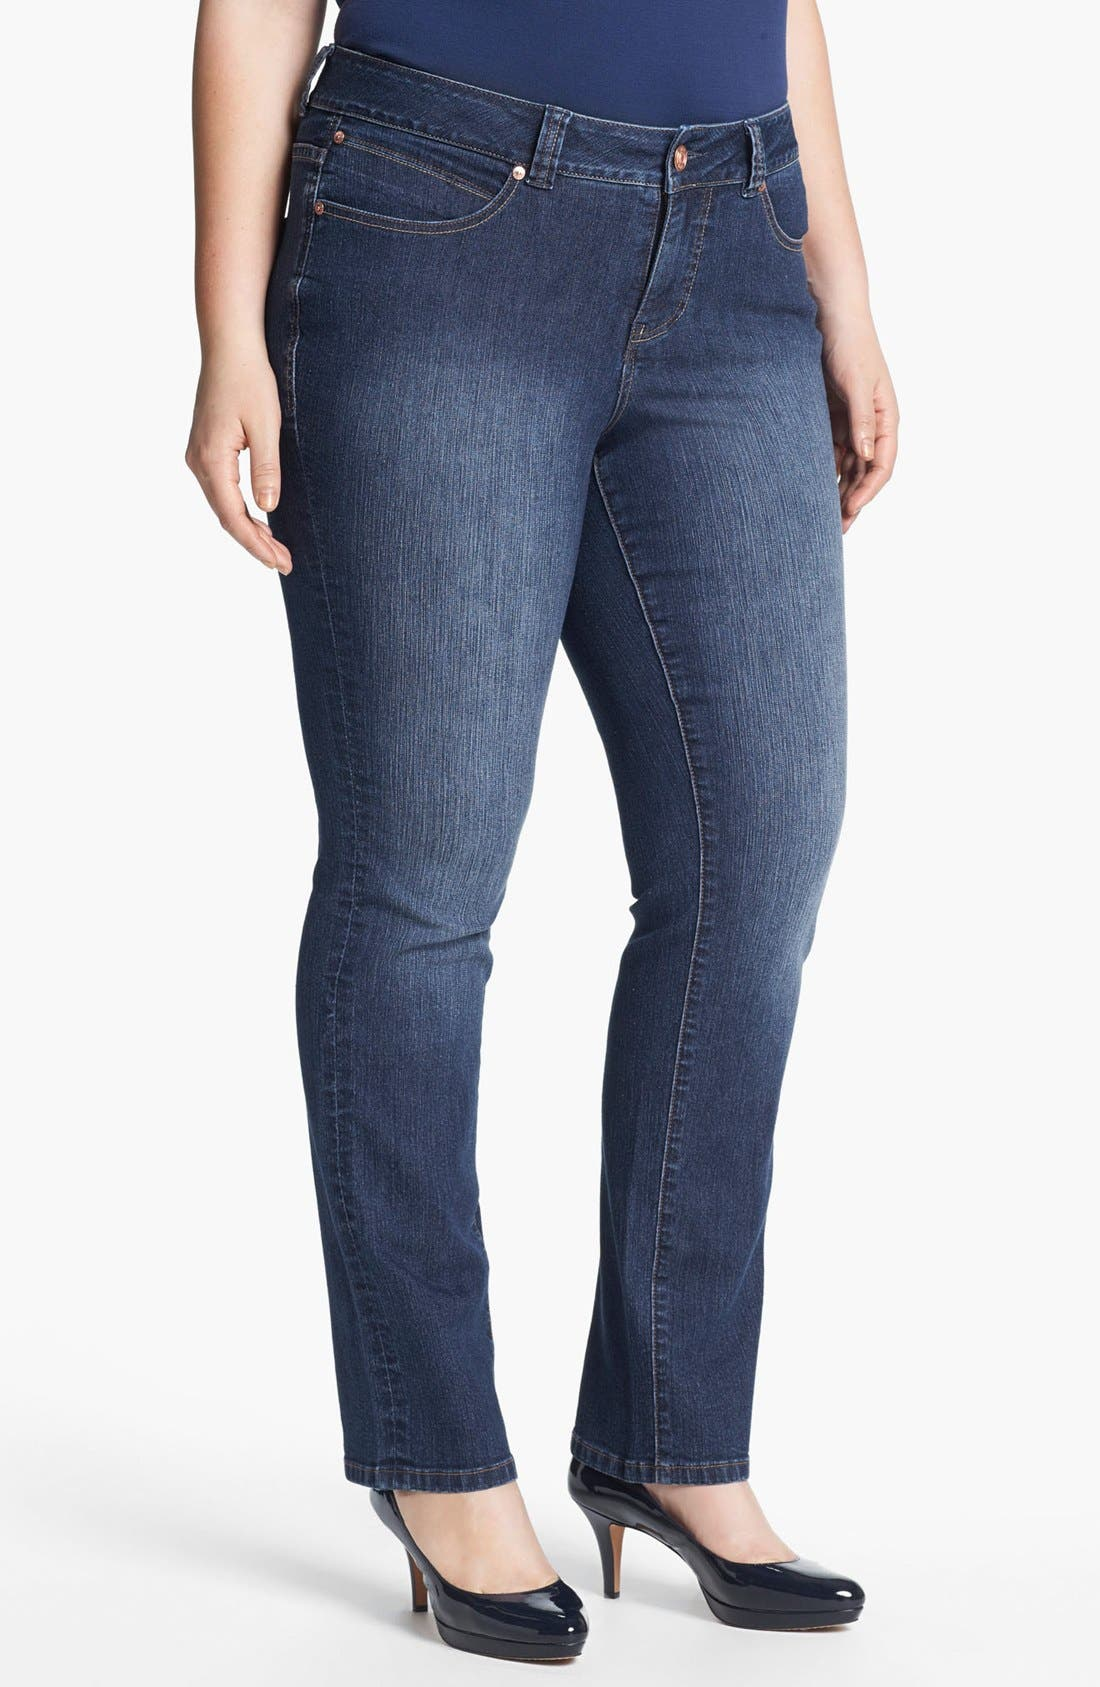 Alternate Image 1 Selected - Jag Jeans 'Andie' Straight Leg Jeans (Plus Size)